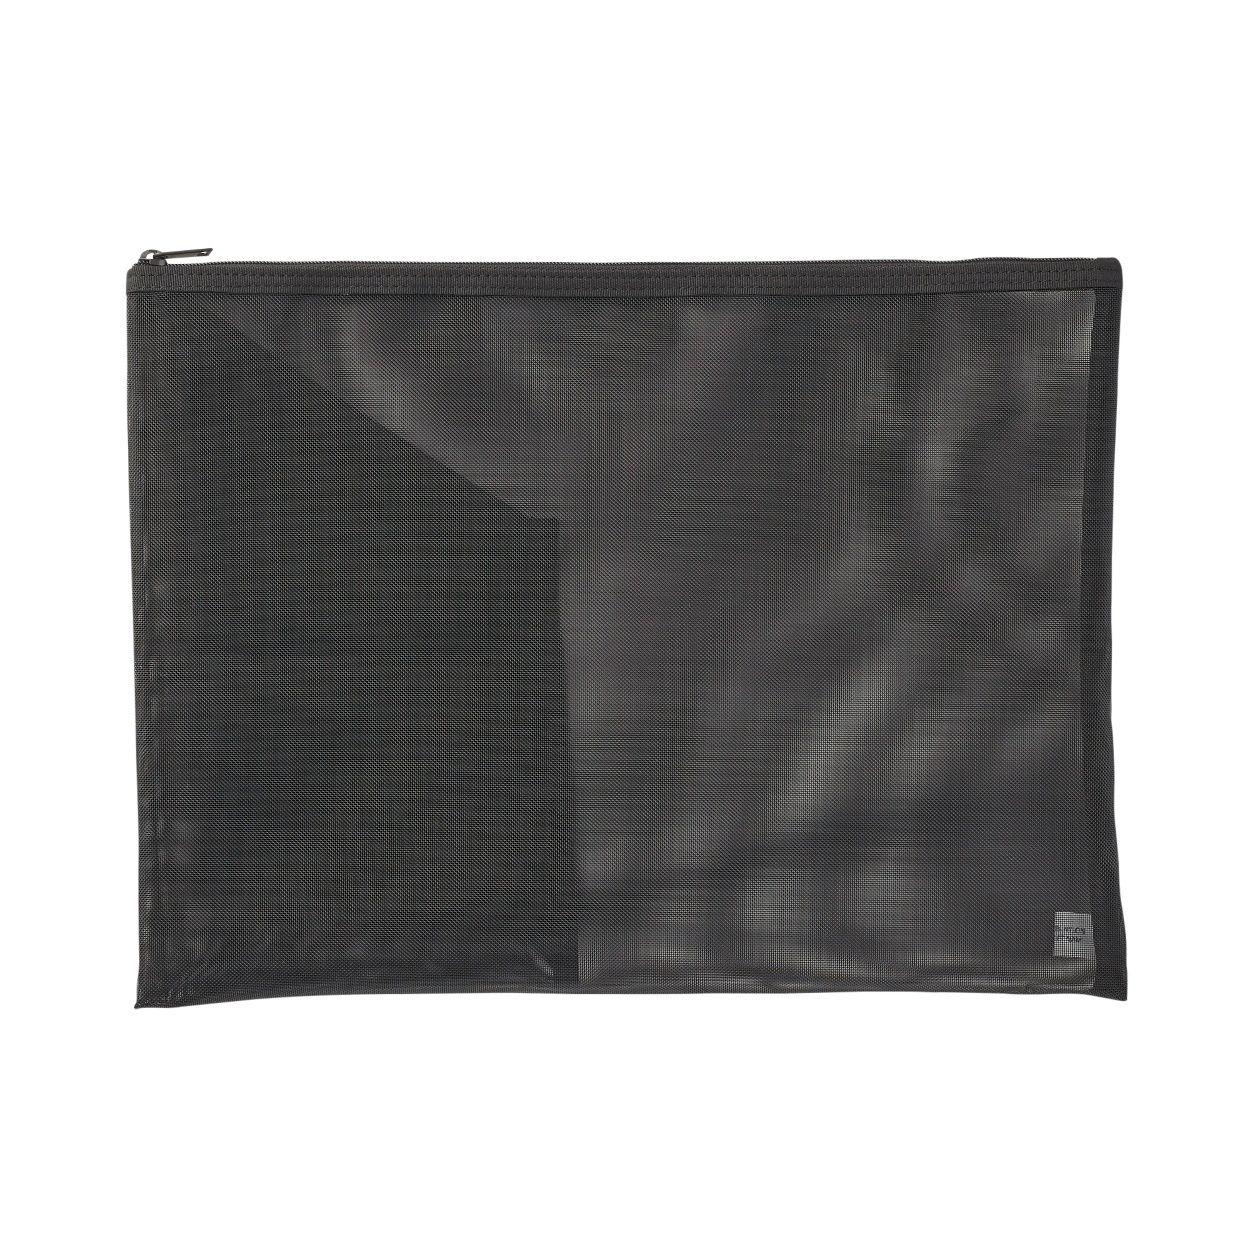 NYLON MESH DOCUMENT CASE WITH POCKET